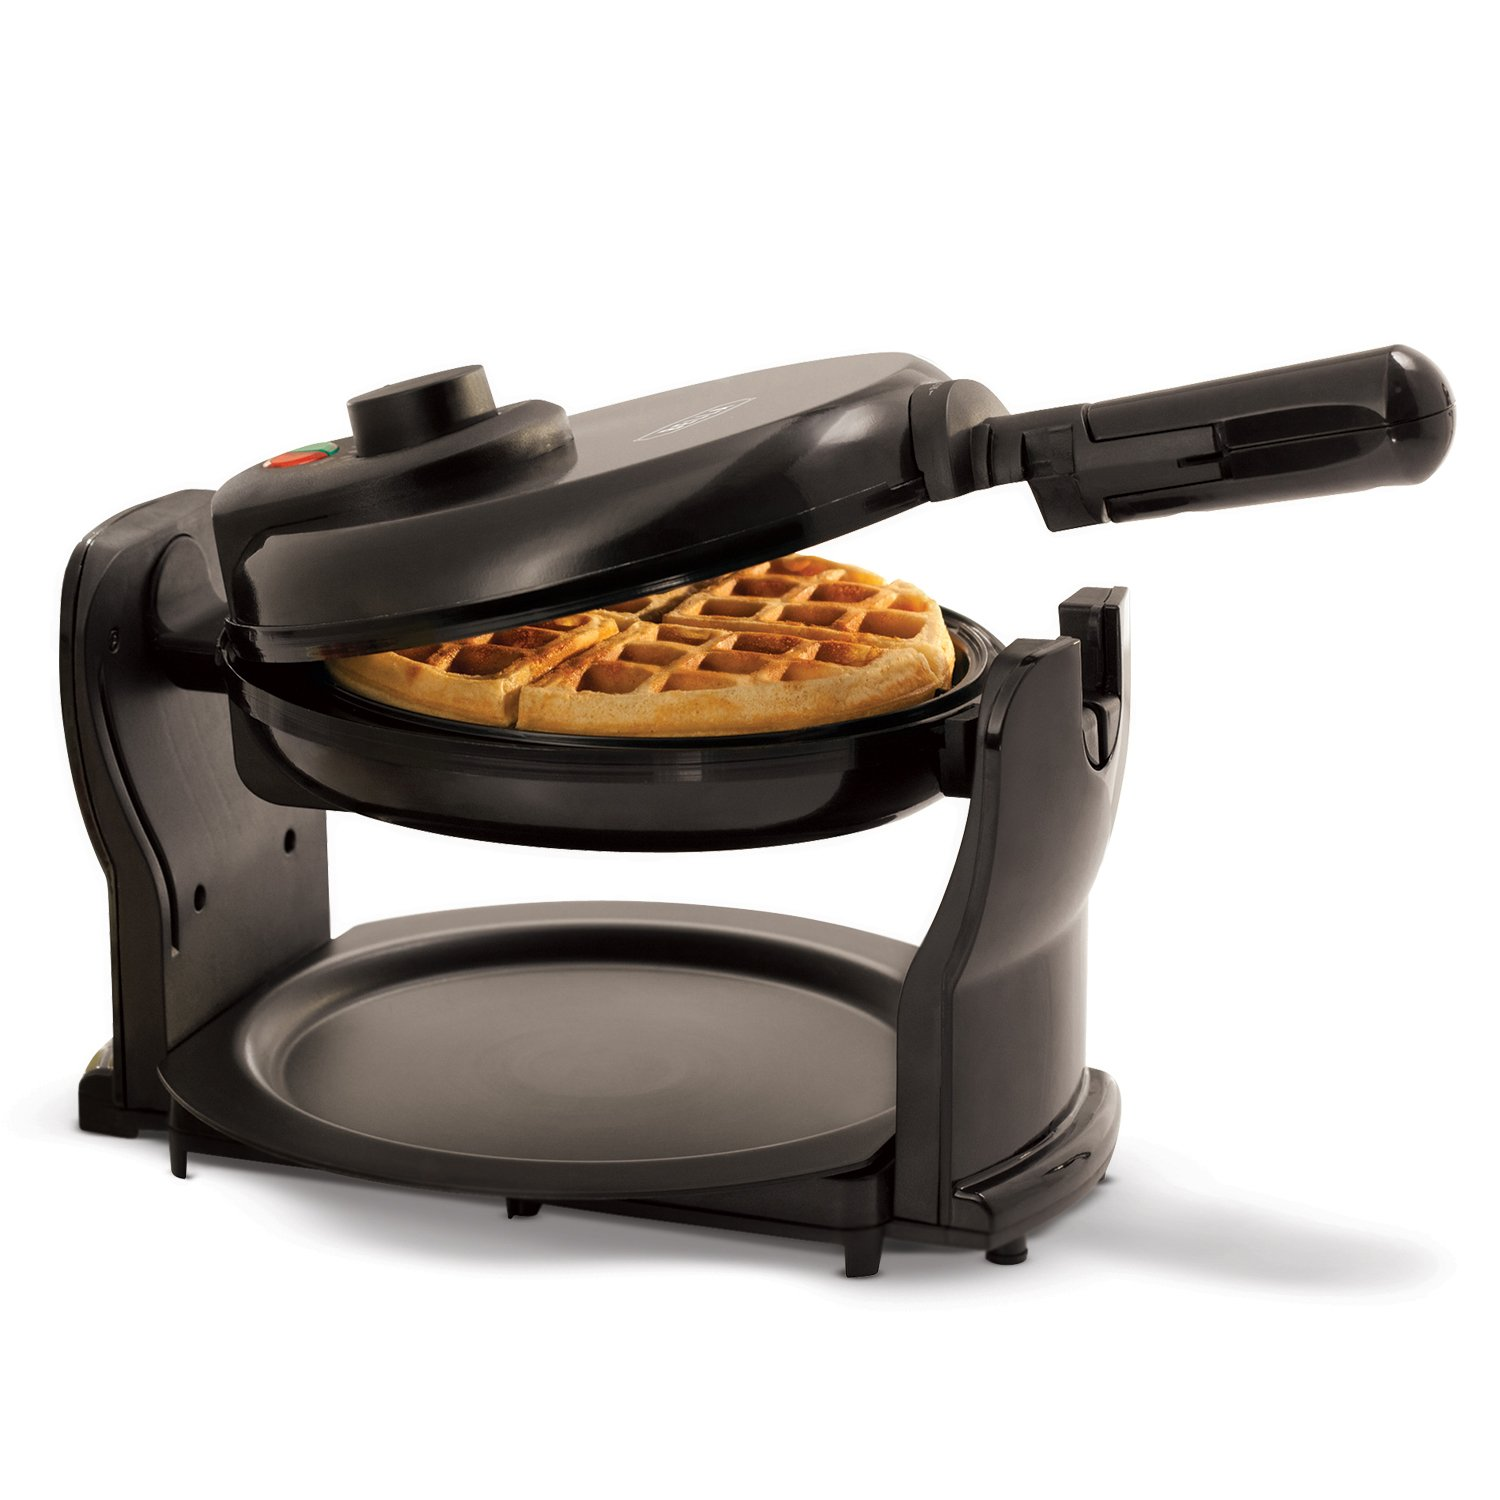 BELLA (13591) Classic Rotating Non-Stick Belgian Waffle Maker with Removeable Drip Tray & Folding Handle, Pro Black